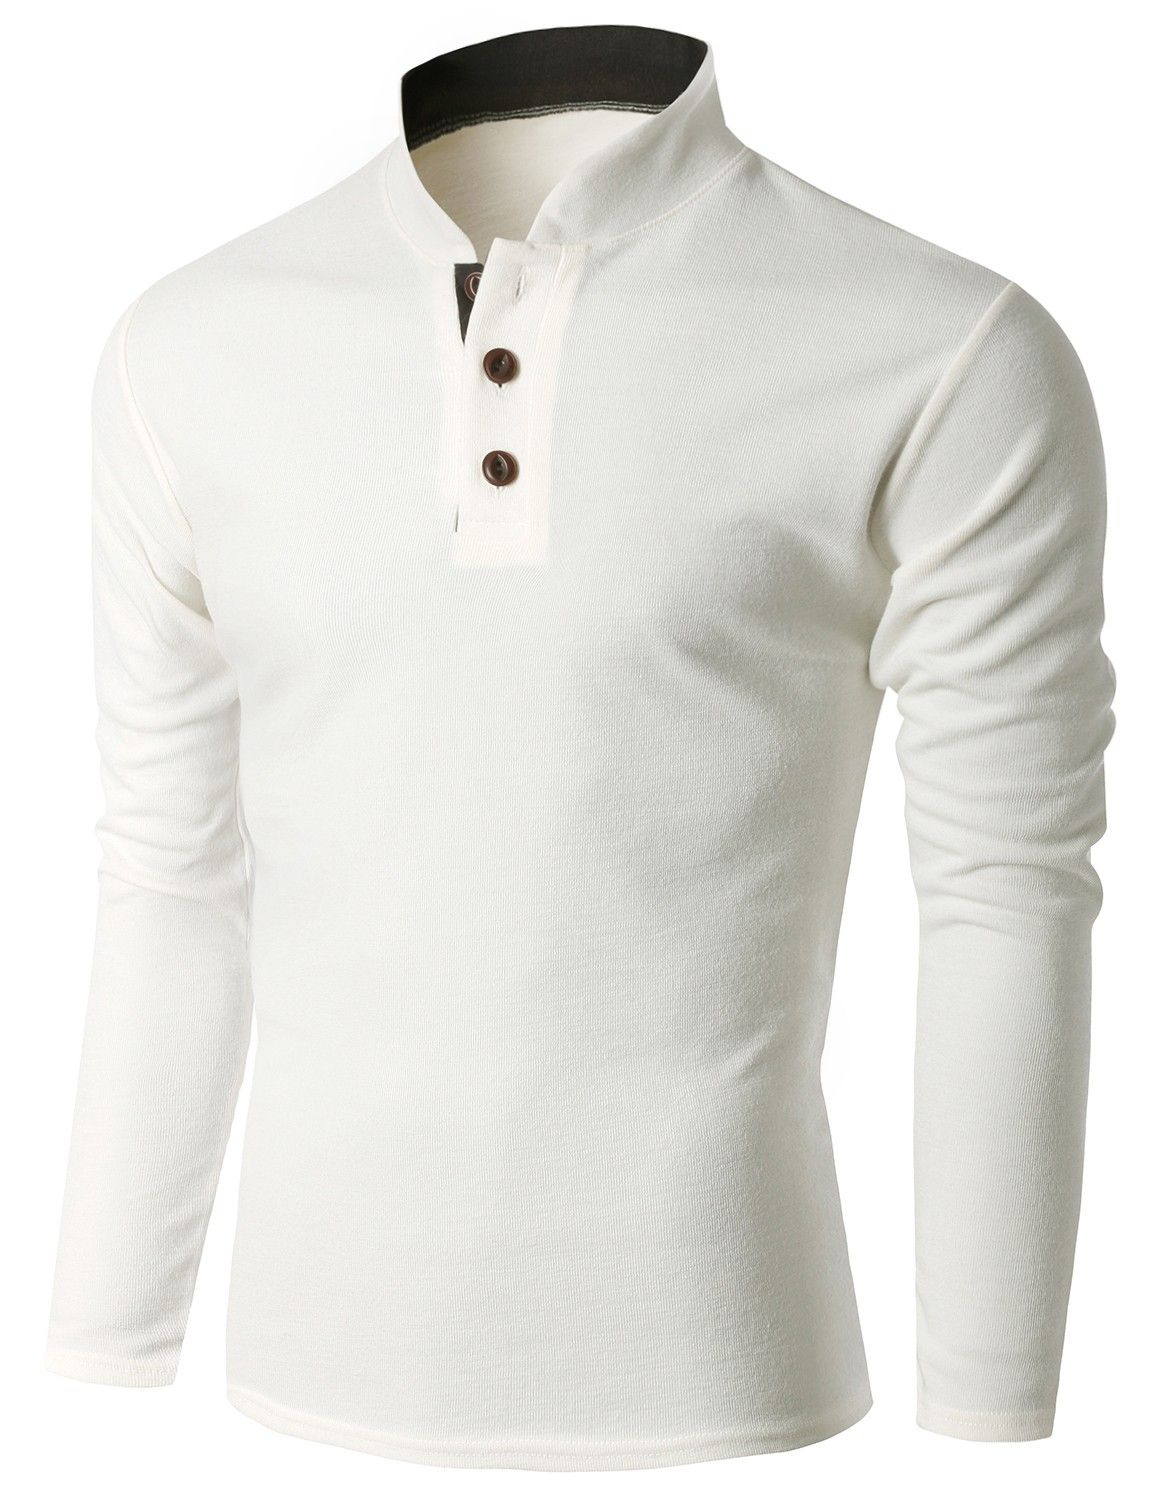 Doublju men 39 s long sleeve china collar henley neck t shirt for Mens collared henley shirt